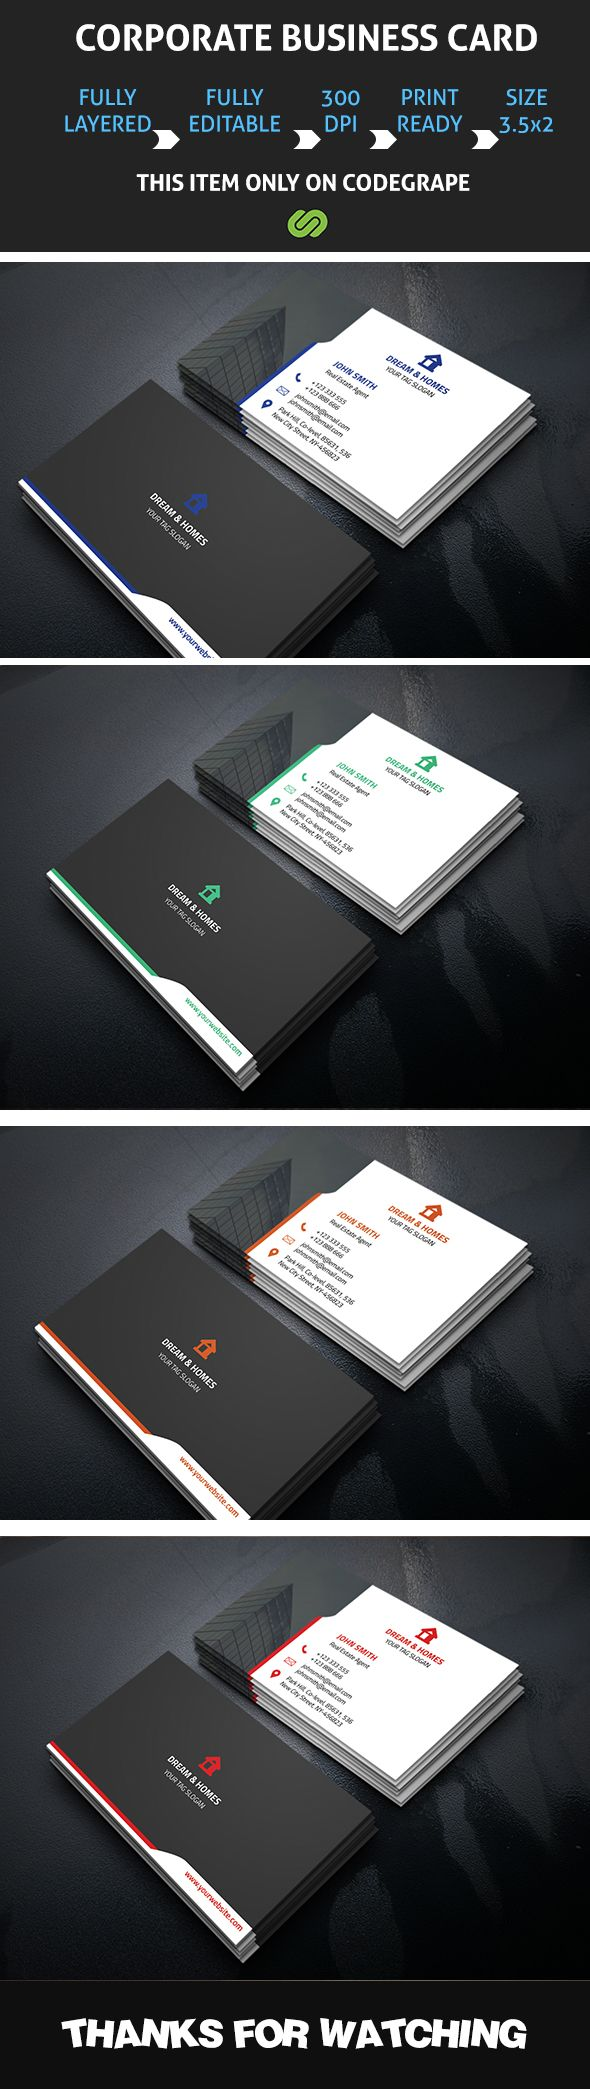 17 Best ideas about Real Estate Business Cards on Pinterest | Real ...